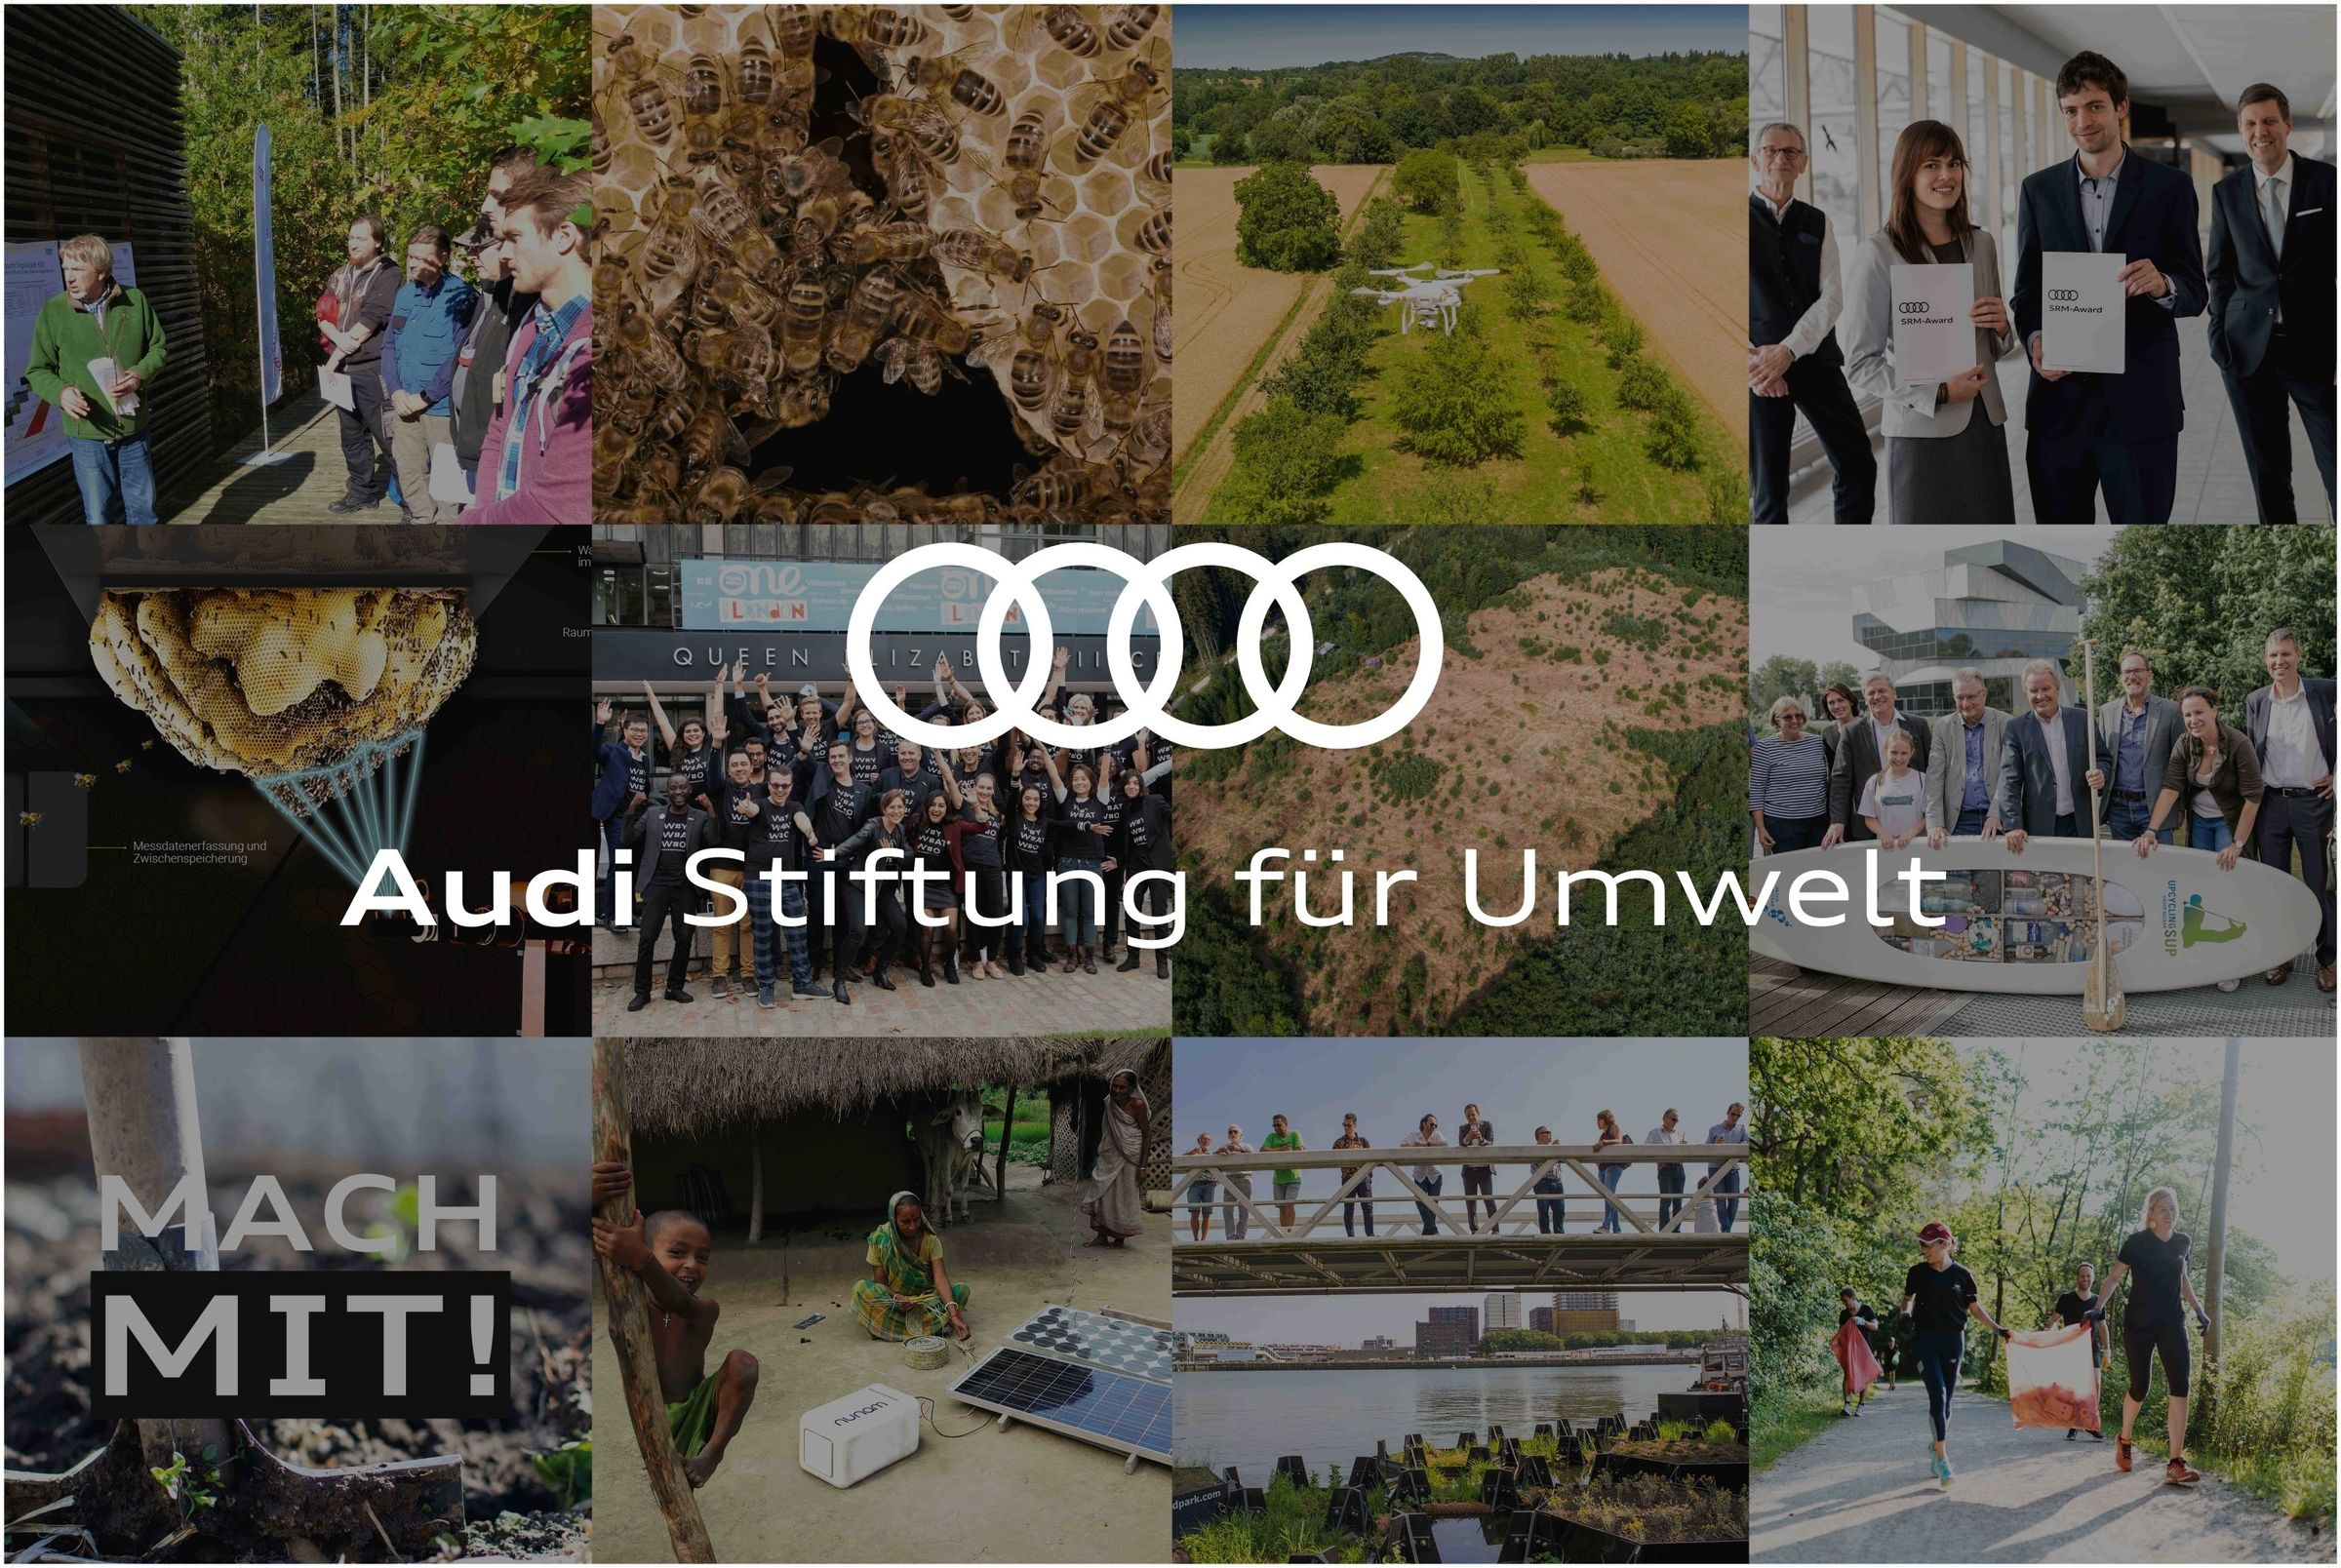 Ten years of the Audi Environmental Foundation: How do we shape a future worth living?